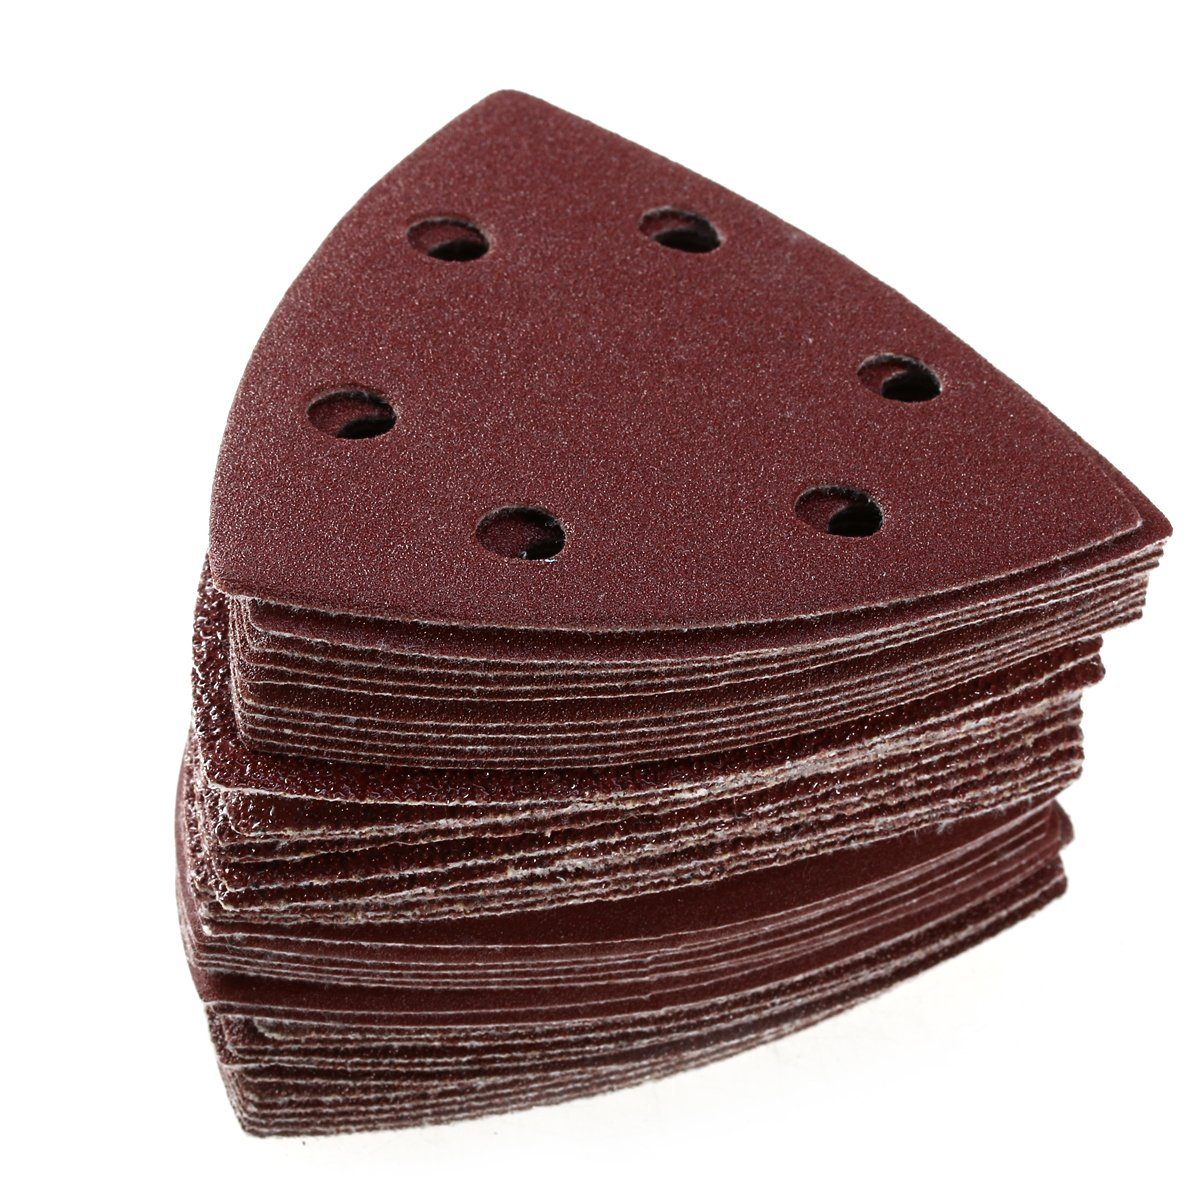 Pack of 60 in total UEETEK 90mm Triangle Sanding Discs Sandpaper 6 Hole 40//60//80//120//180//240 Grit each of 10 pcs